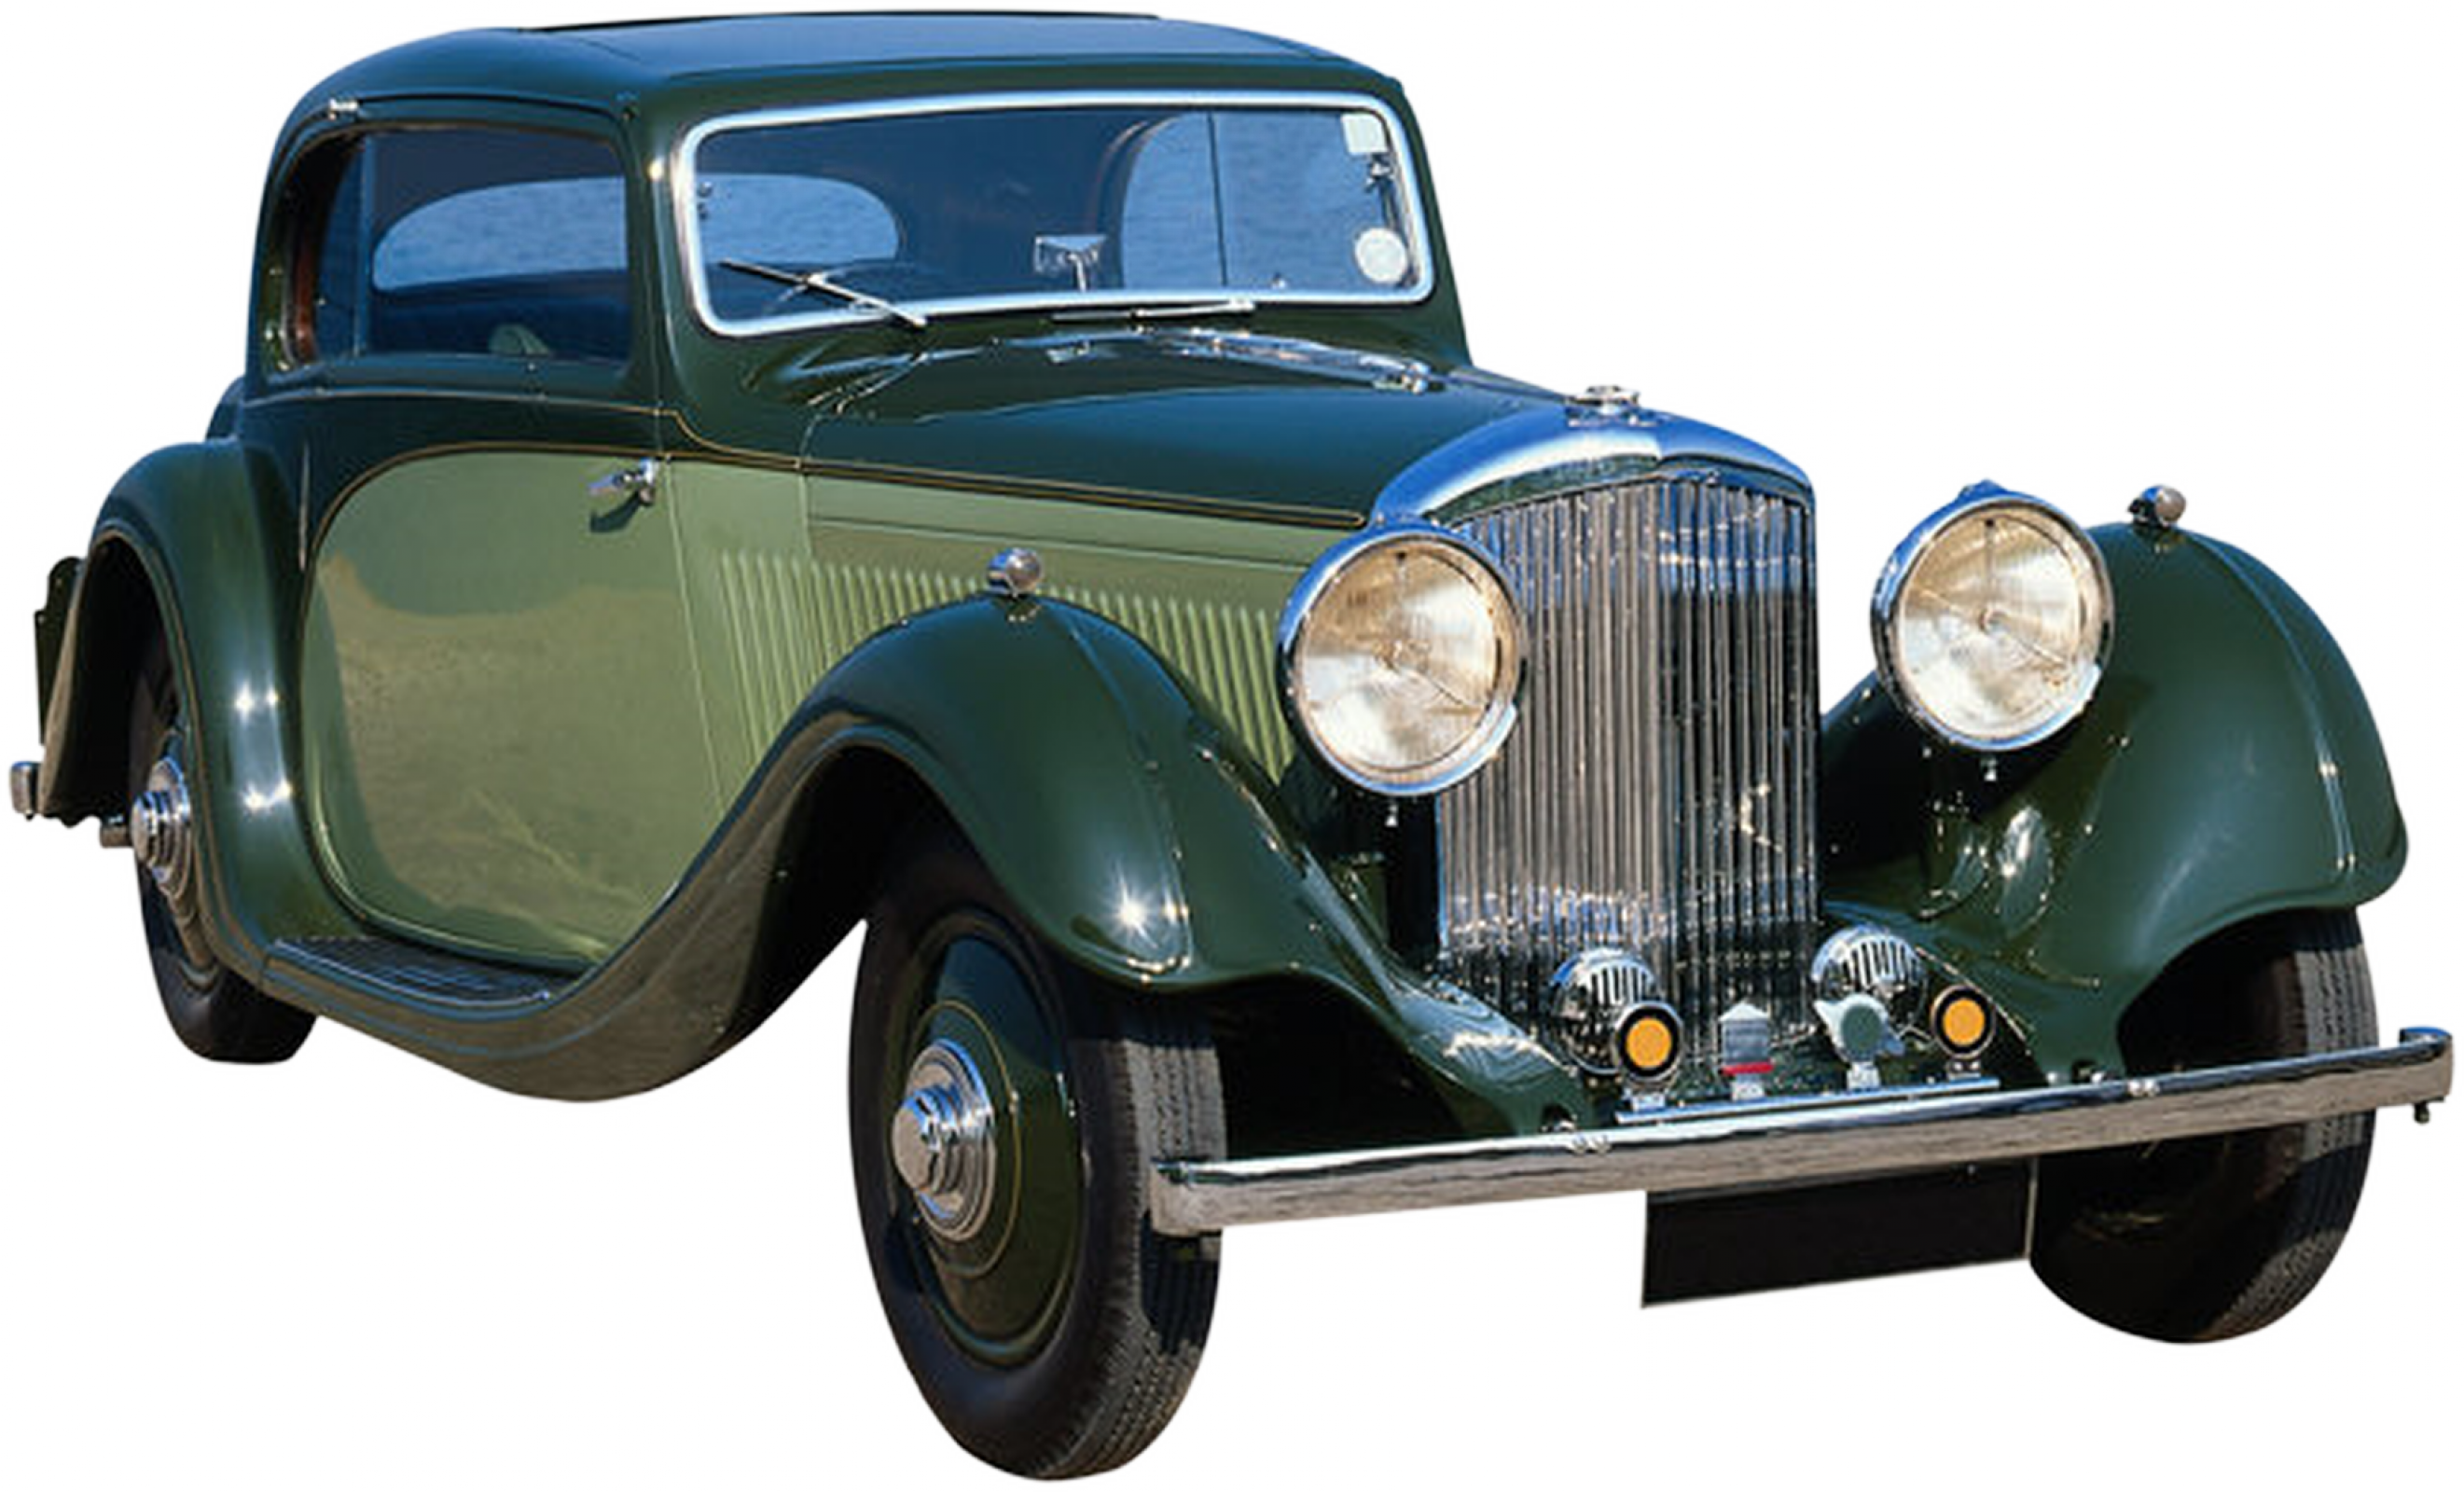 Vintage car with tree clipart clipart transparent download Vintage Cars Transparent PNG Pictures - Free Icons and PNG Backgrounds clipart transparent download